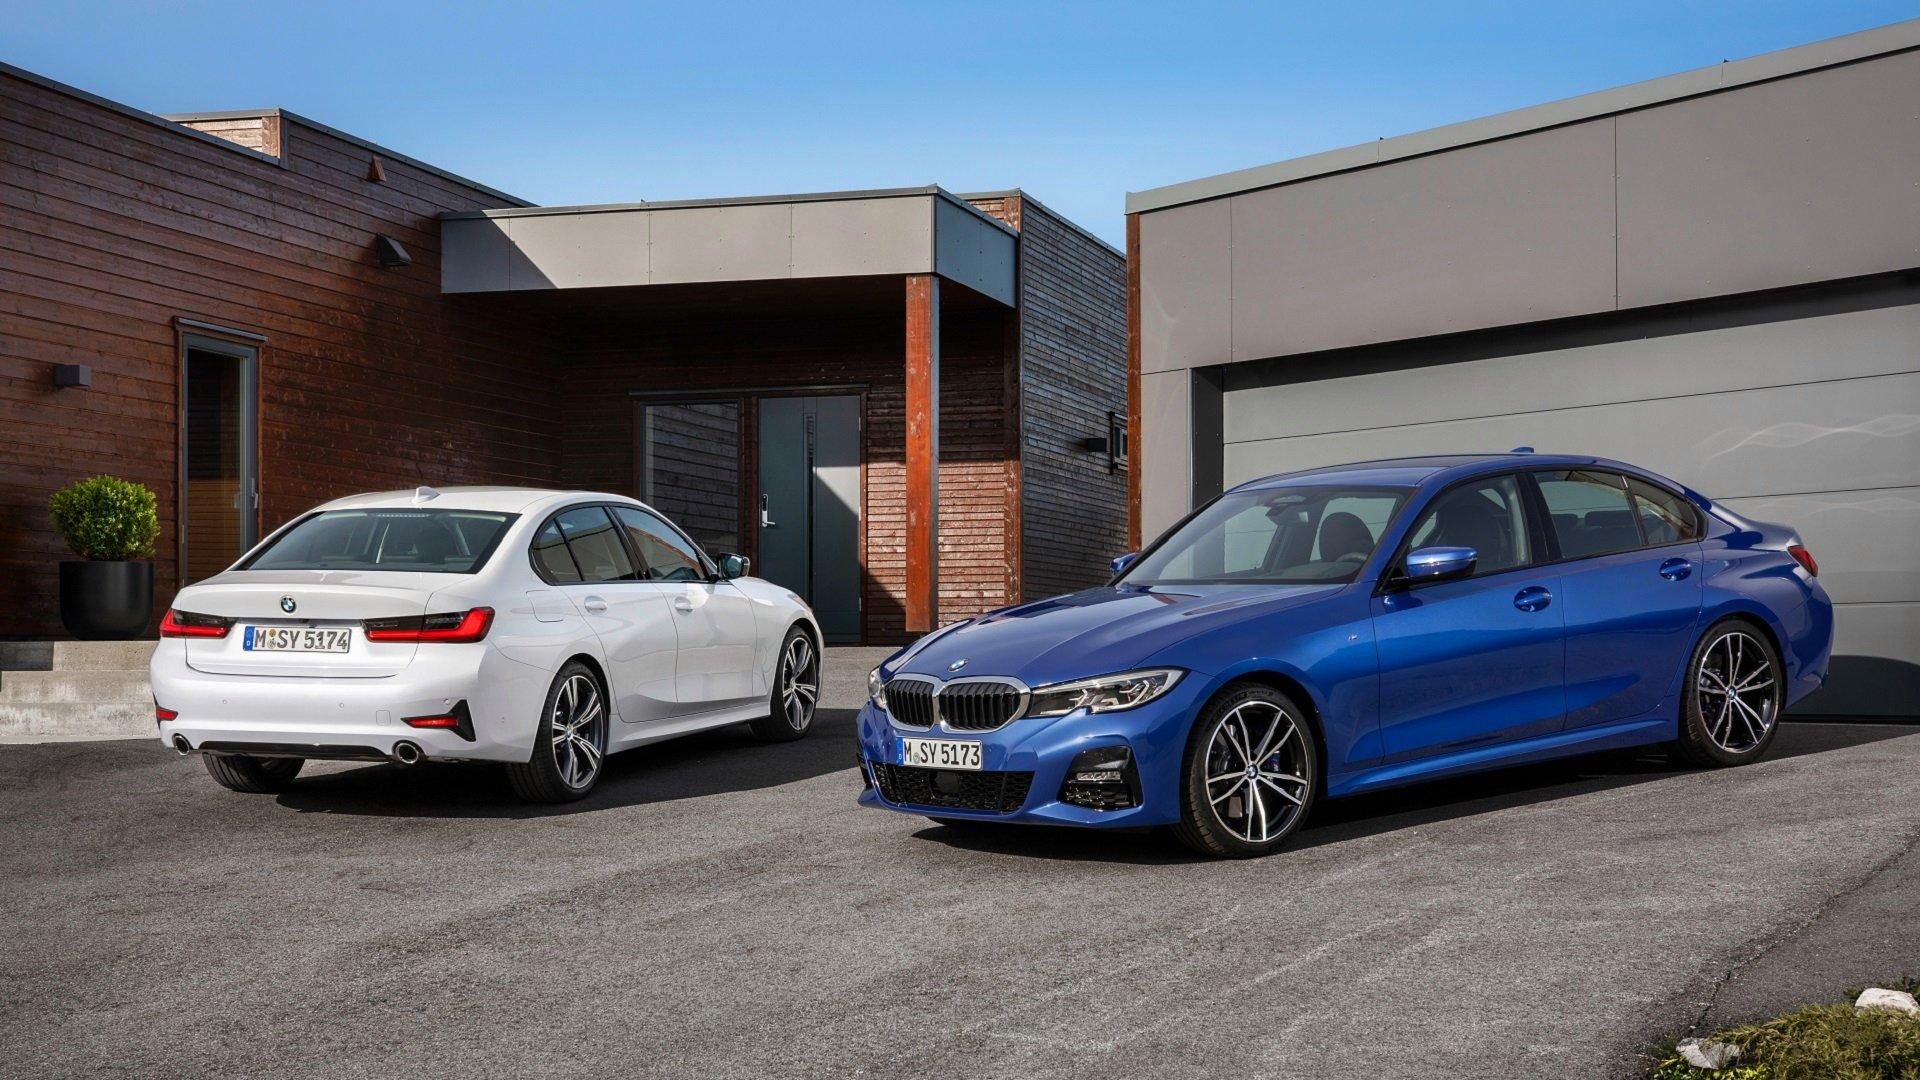 2019 BMW 3 Series: All New and Ready to Impress